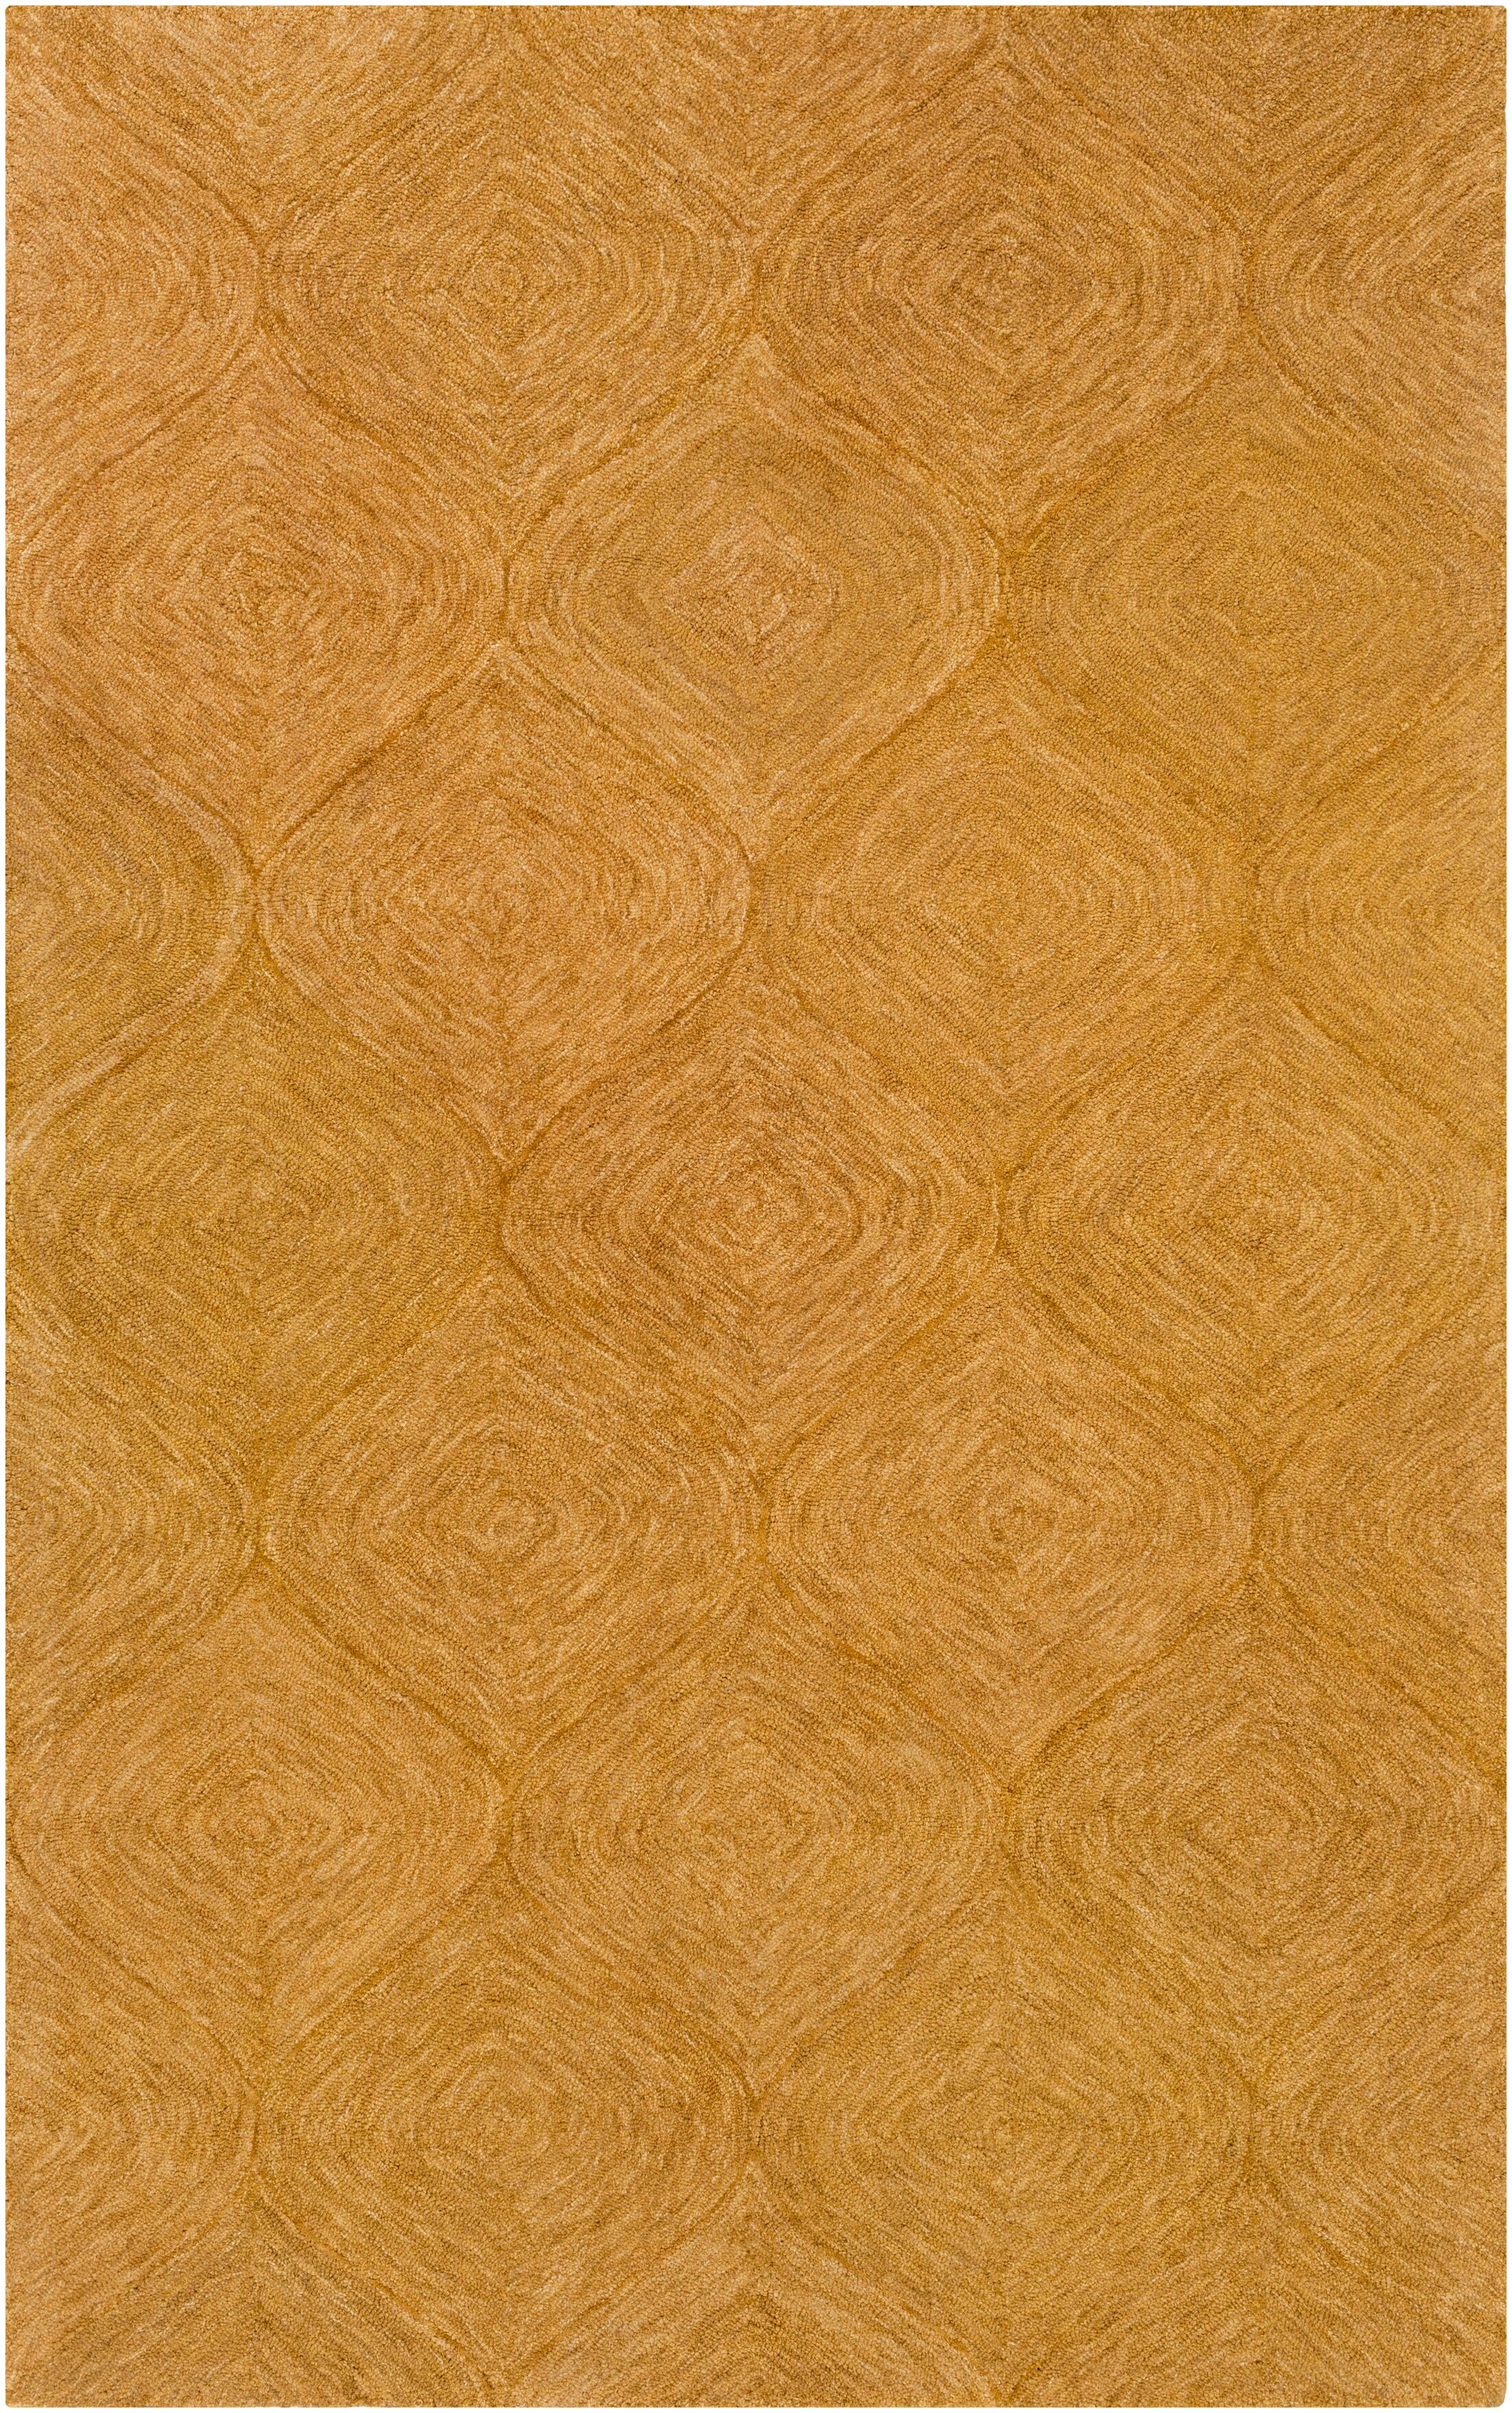 Bloch Hand-Tufted Orange Area Rug Rug Size: Rectangle 5' x 8'